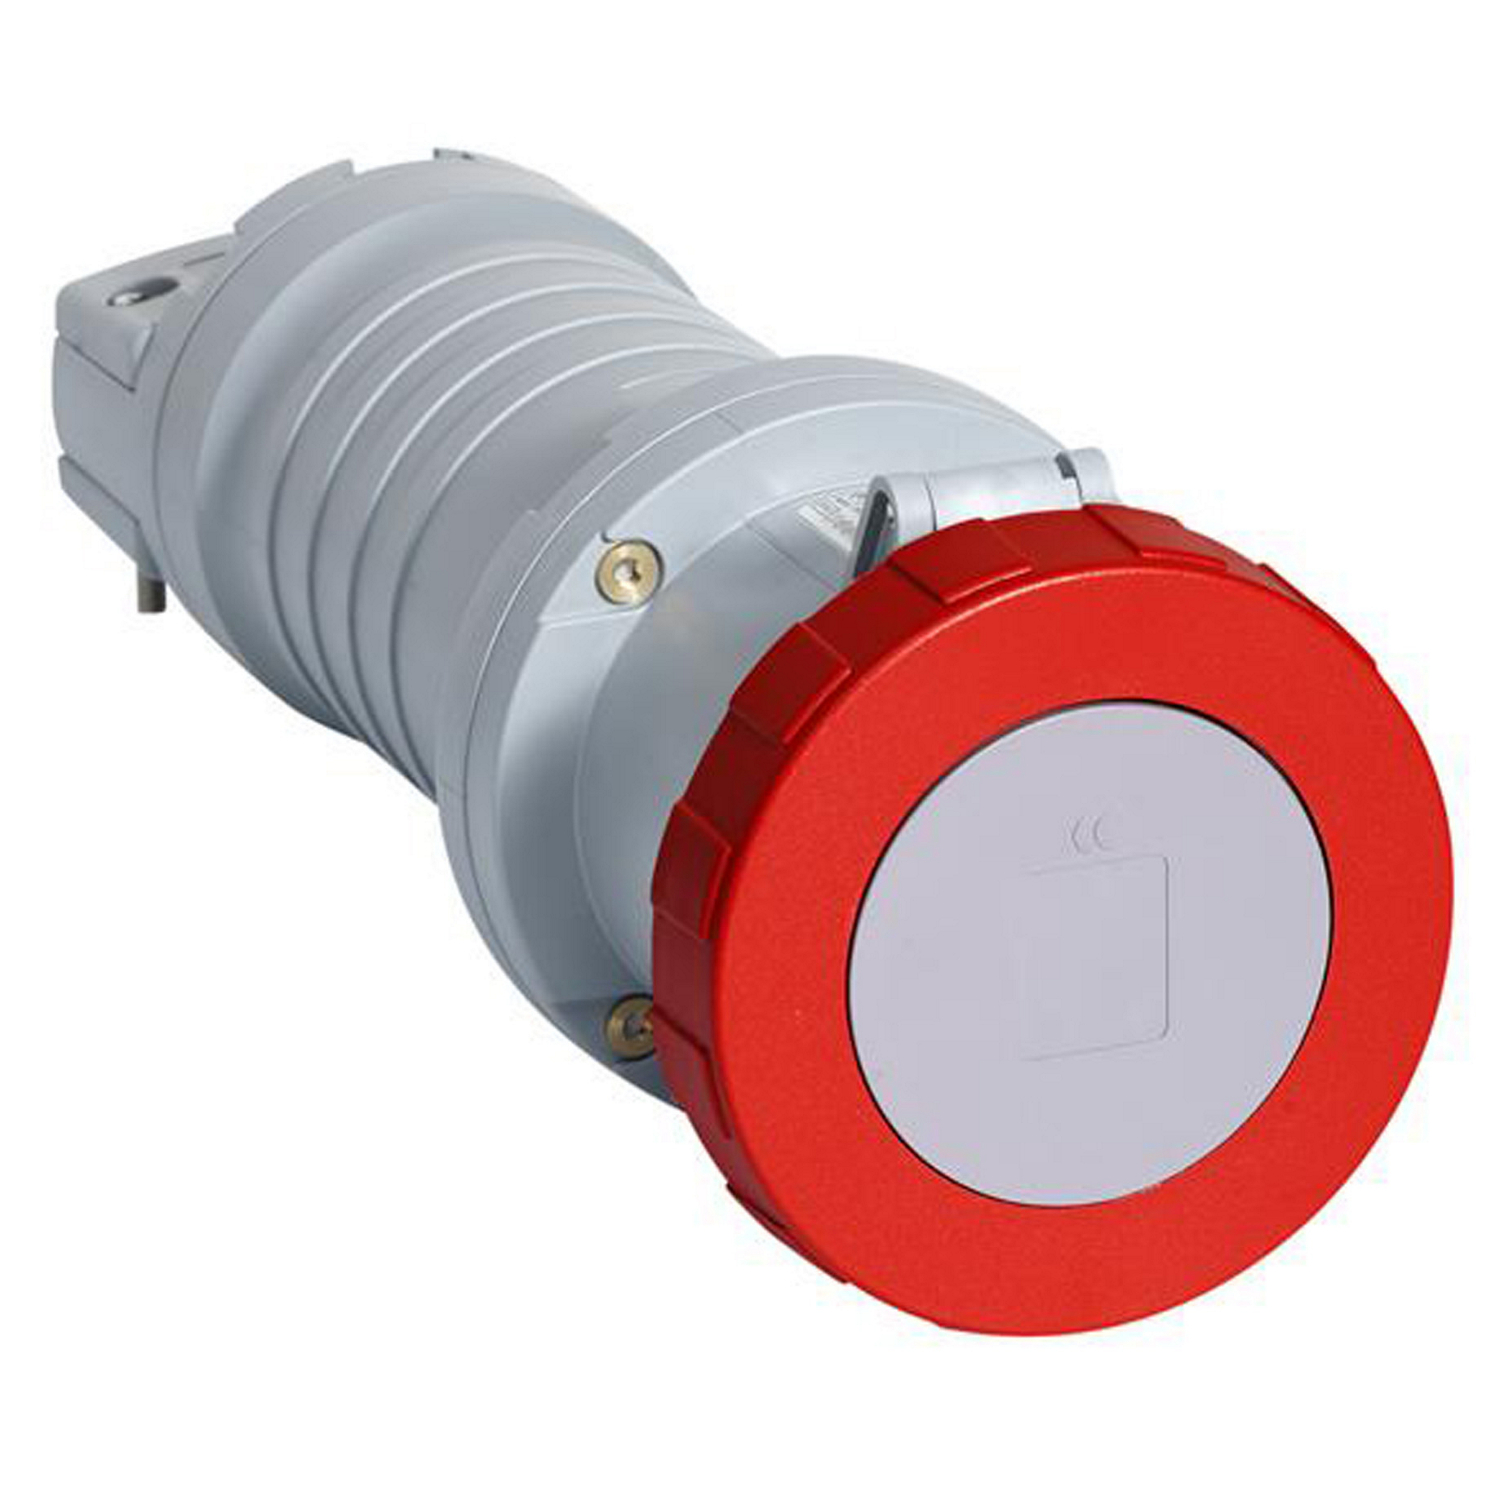 ABB ABB460C7W Pin and Sleeve Connector